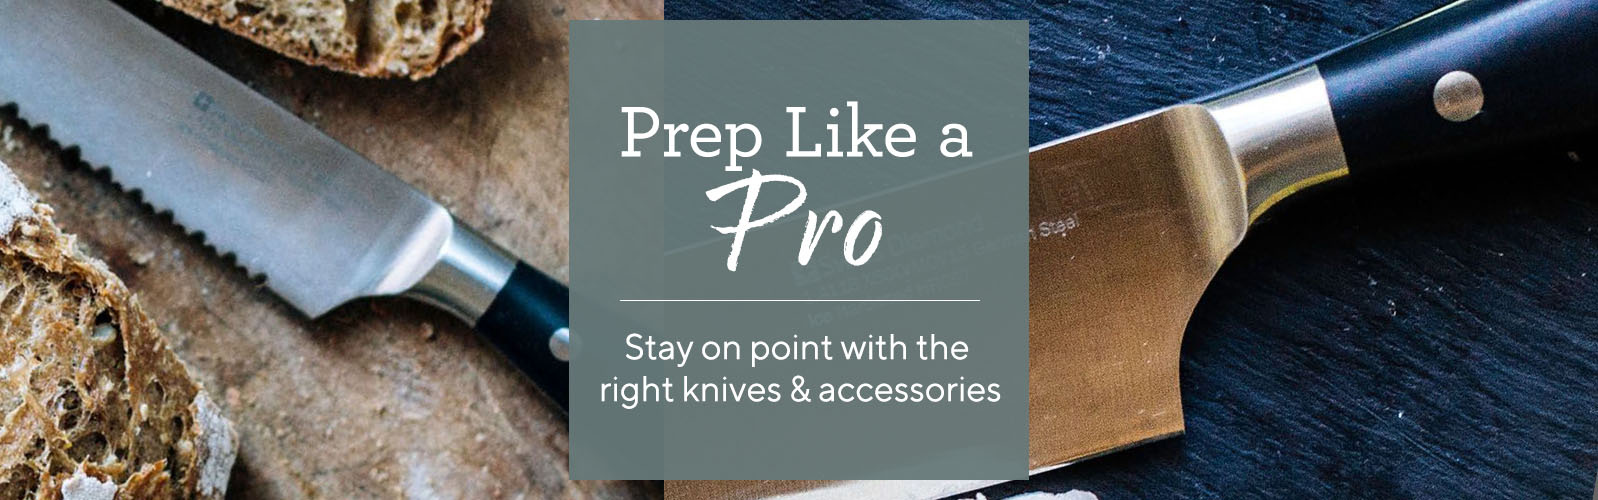 Cut, Carve & Sharpen.  Keep your prep work on point with knives & other accessories